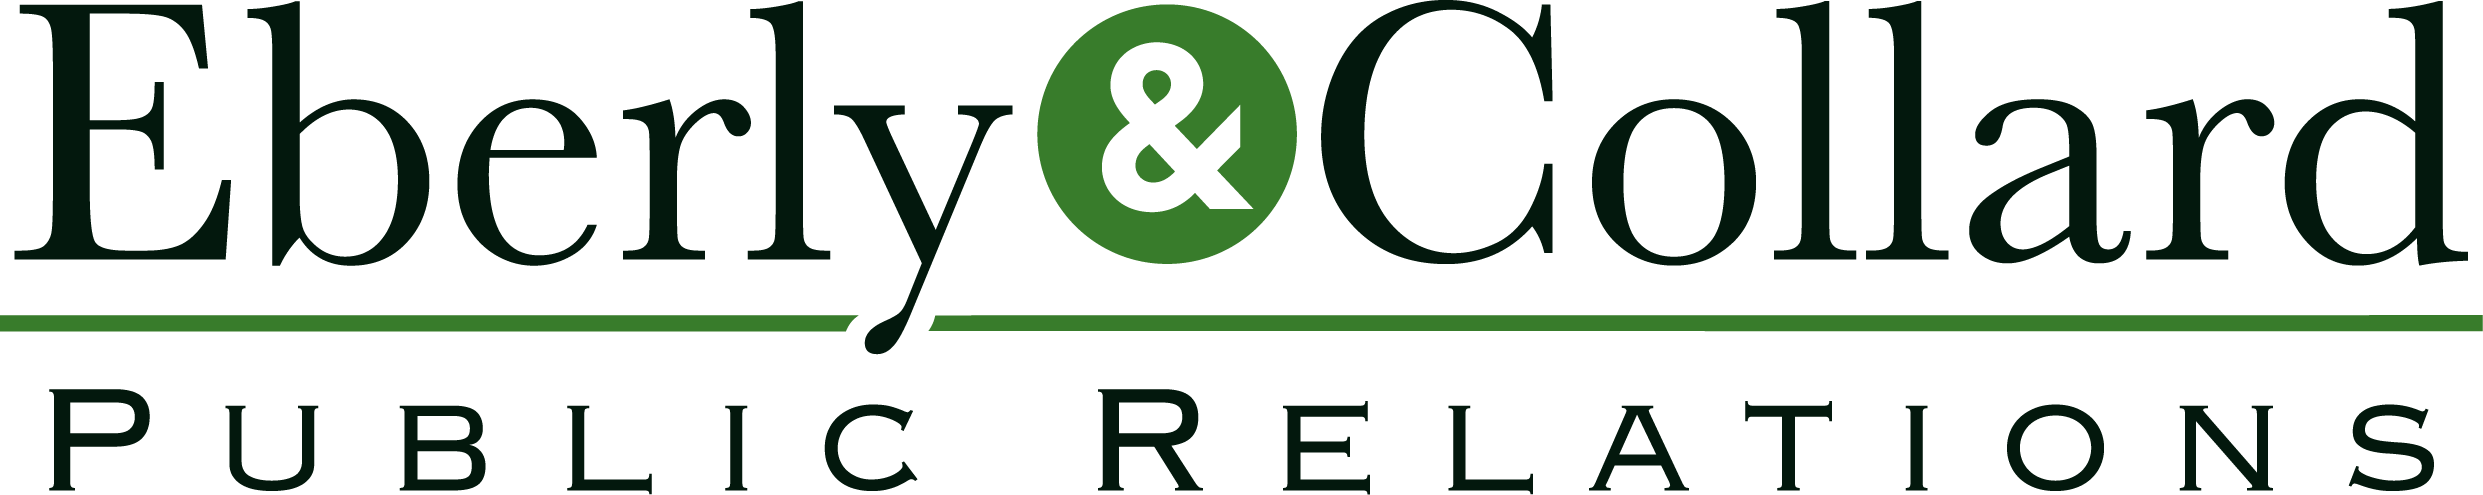 Eberly & Collard Public Relations